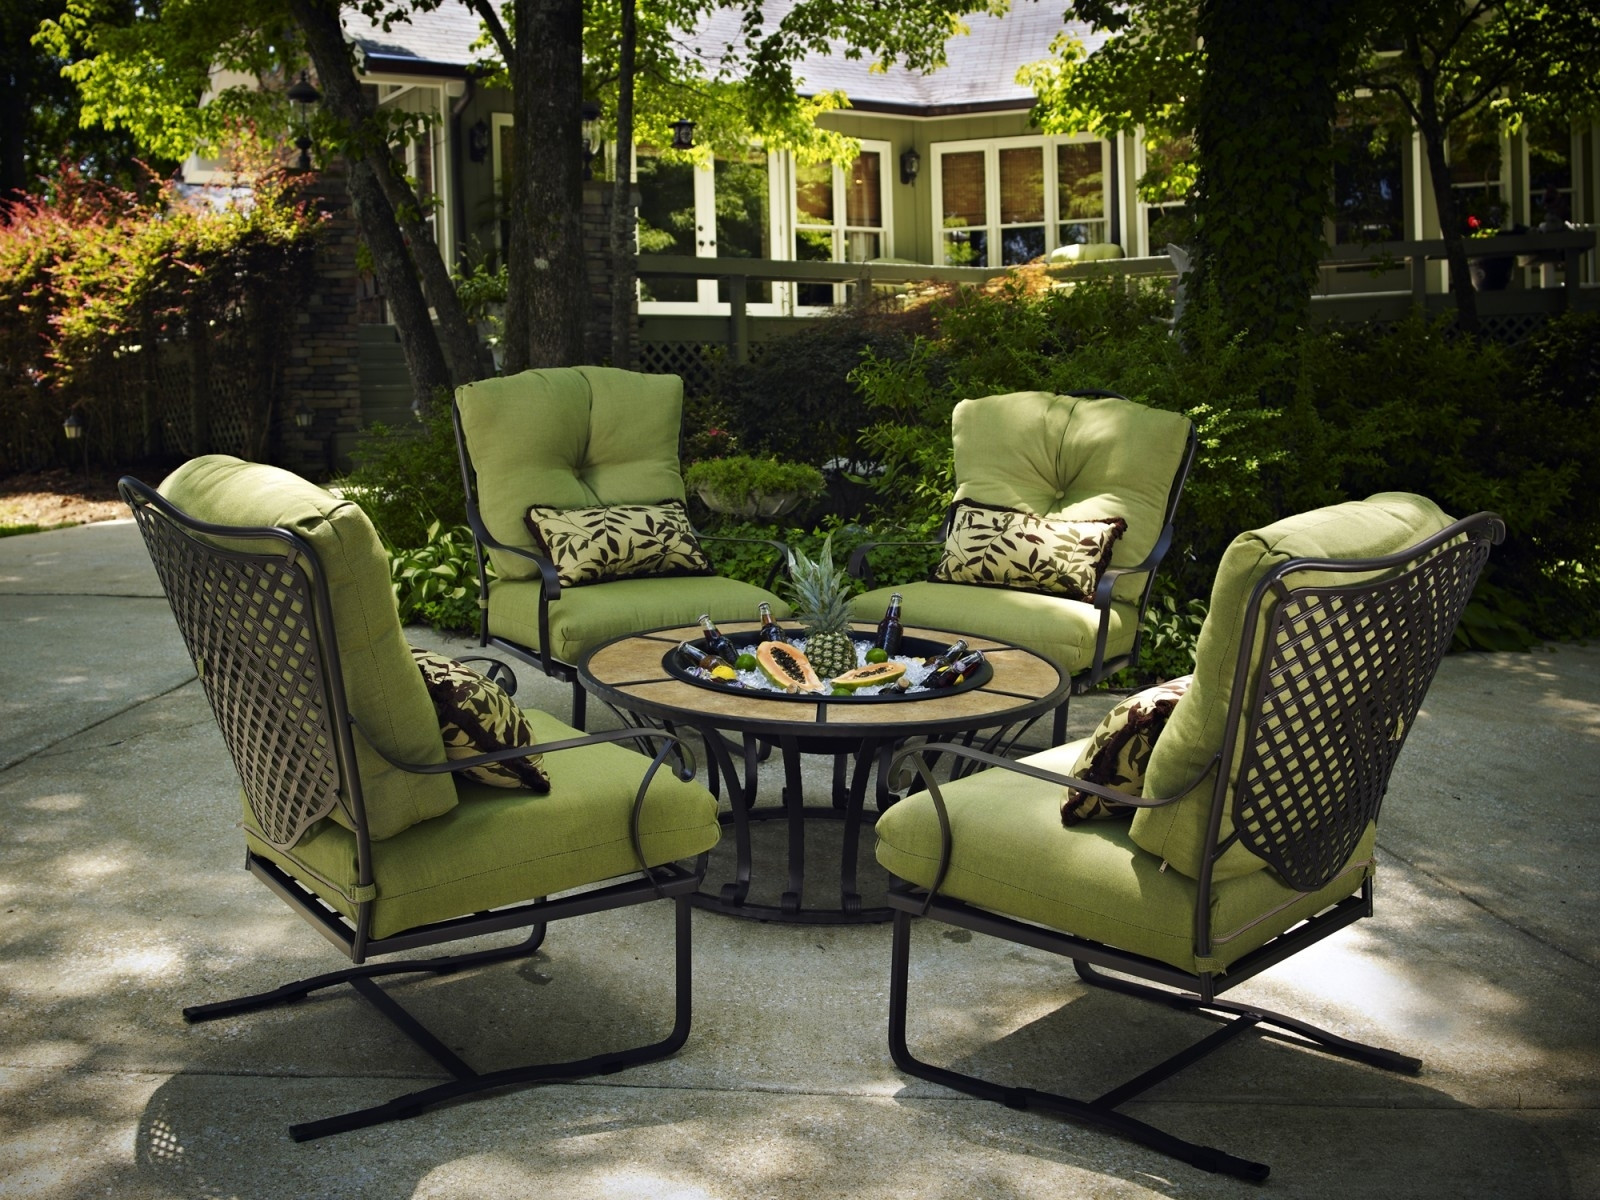 Best ideas about At Home Patio Furniture . Save or Pin Wrought Iron Patio Furniture Elegant Outdoor Living — The Now.